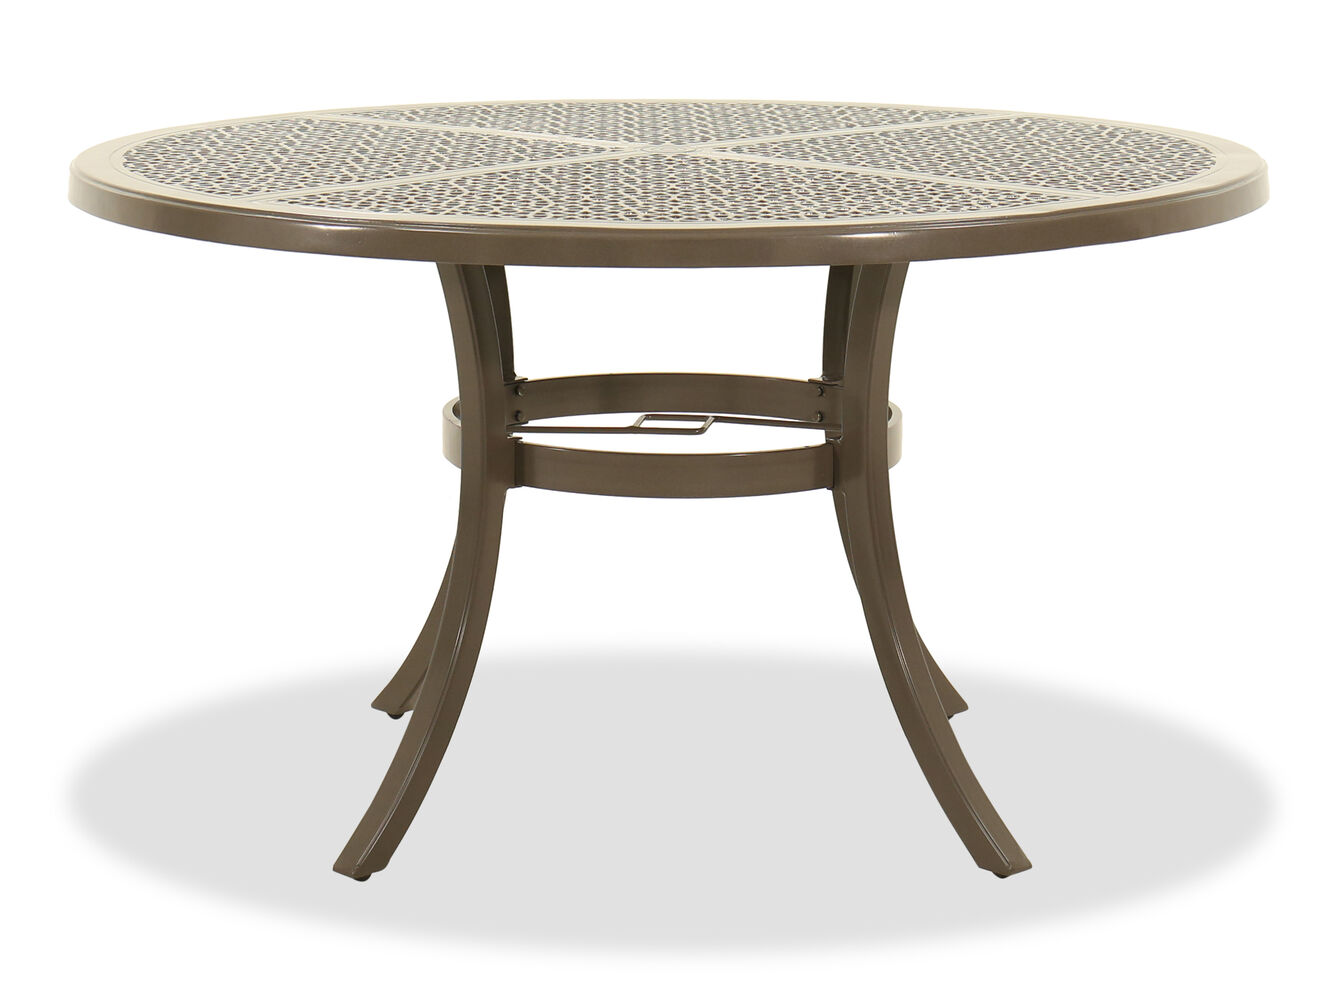 Round LatticeTop Dining Table In Brown Mathis Brothers Furniture - Round lattice coffee table